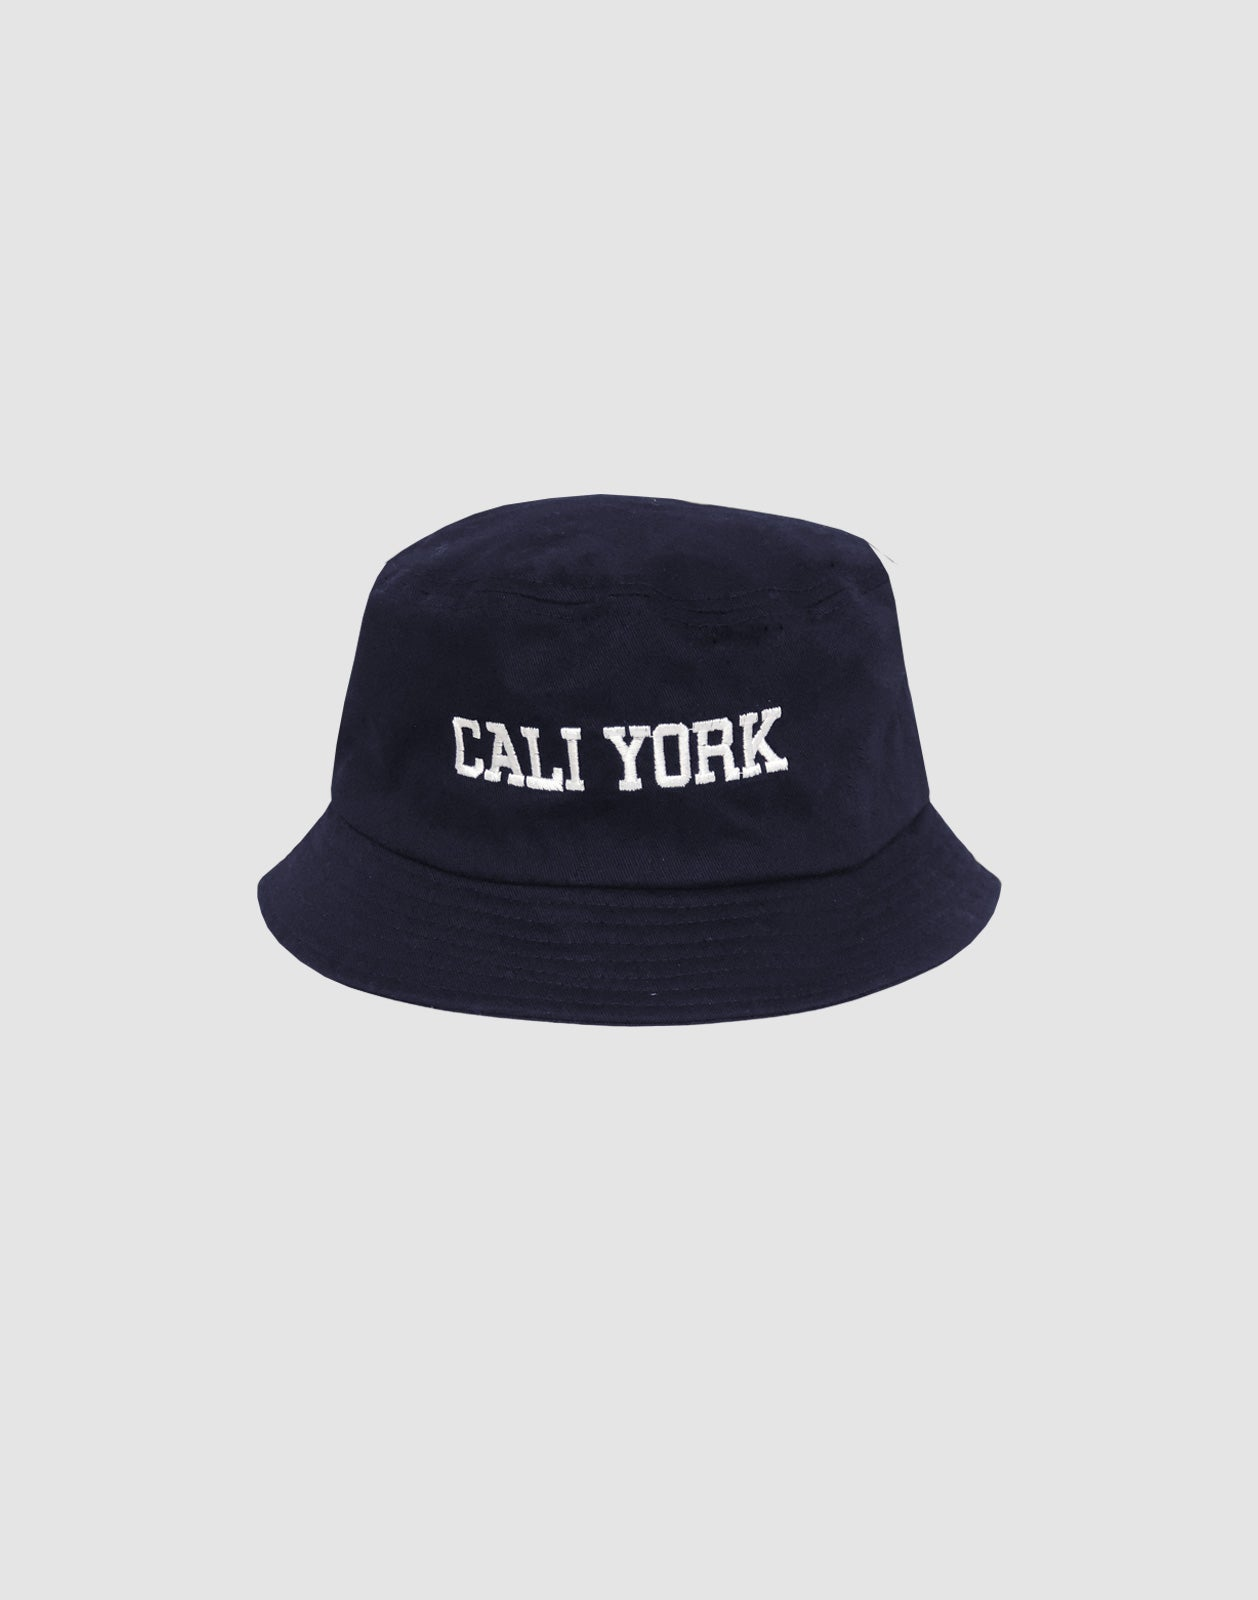 CaliYork Bucket hat in navy cotton twill.